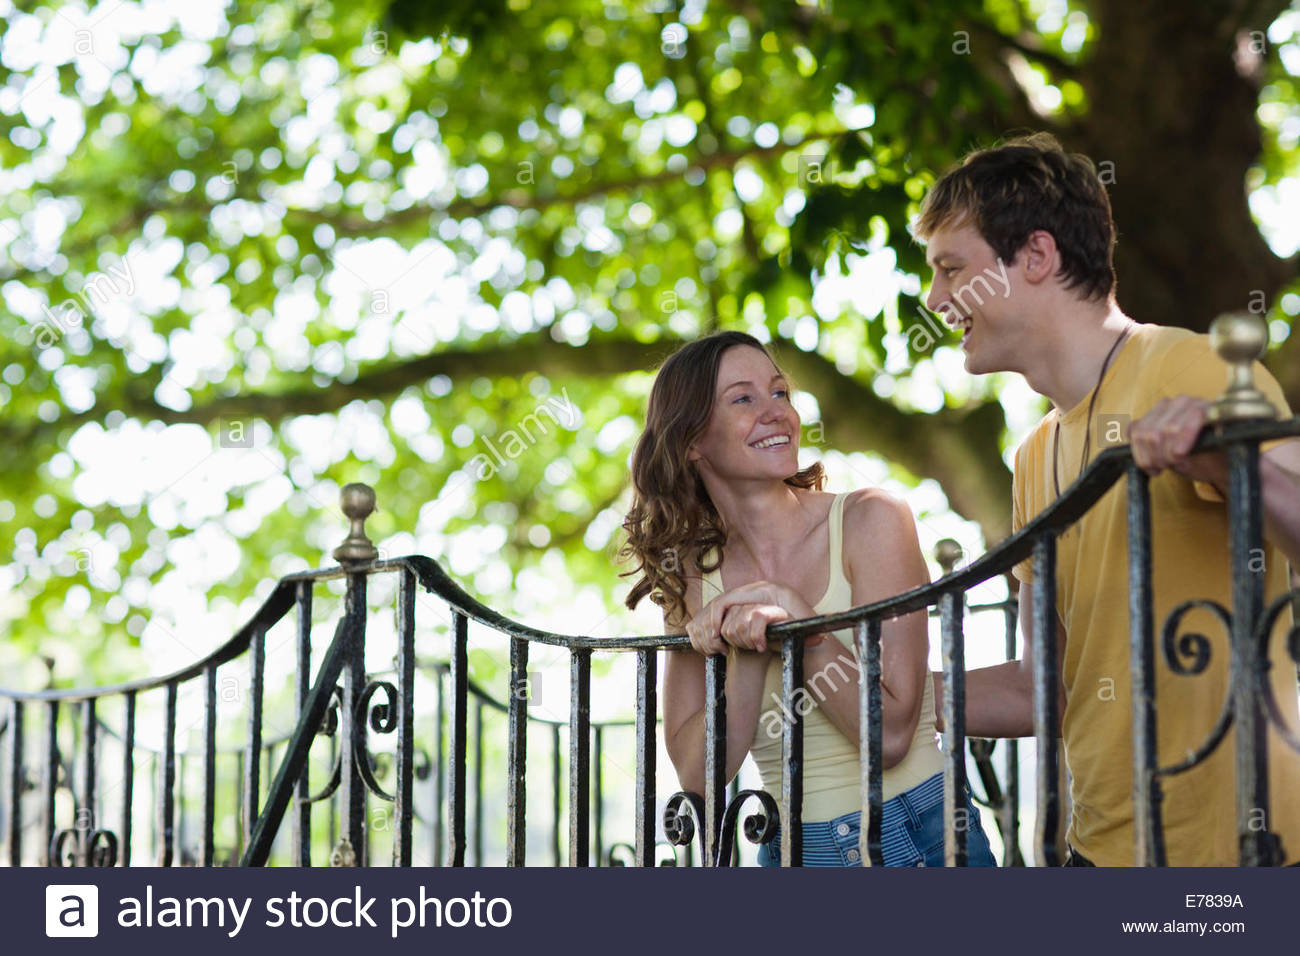 Smiling couple leaning on railing outdoors Photo Stock